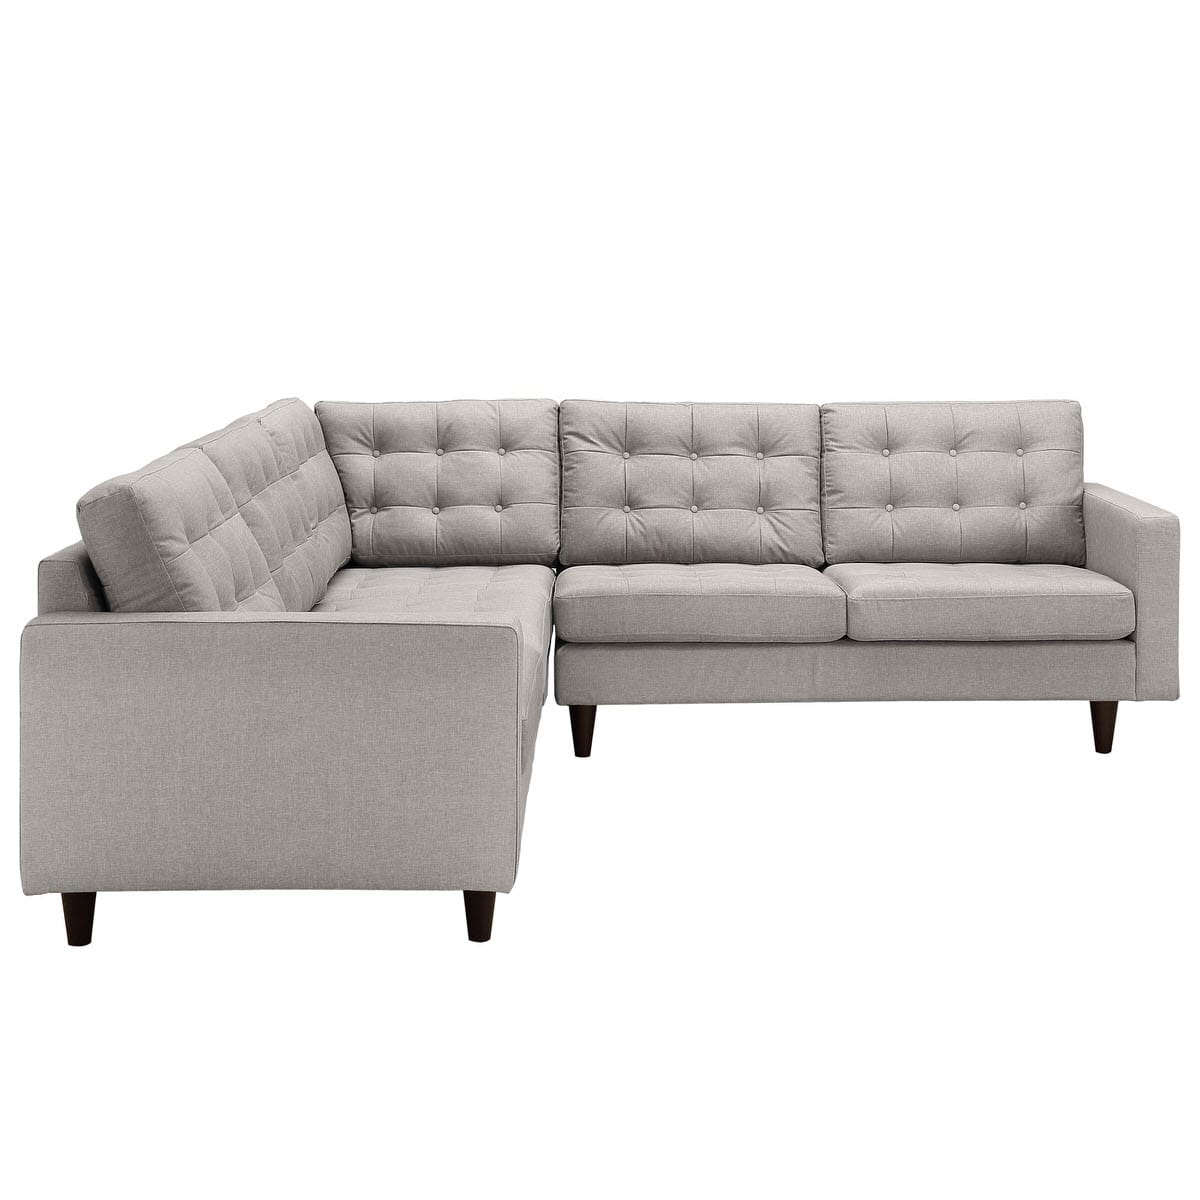 Sofa Set Action Empress 3 Piece Upholstered Fabric Sectional Sofa Set Light Gray By Modway